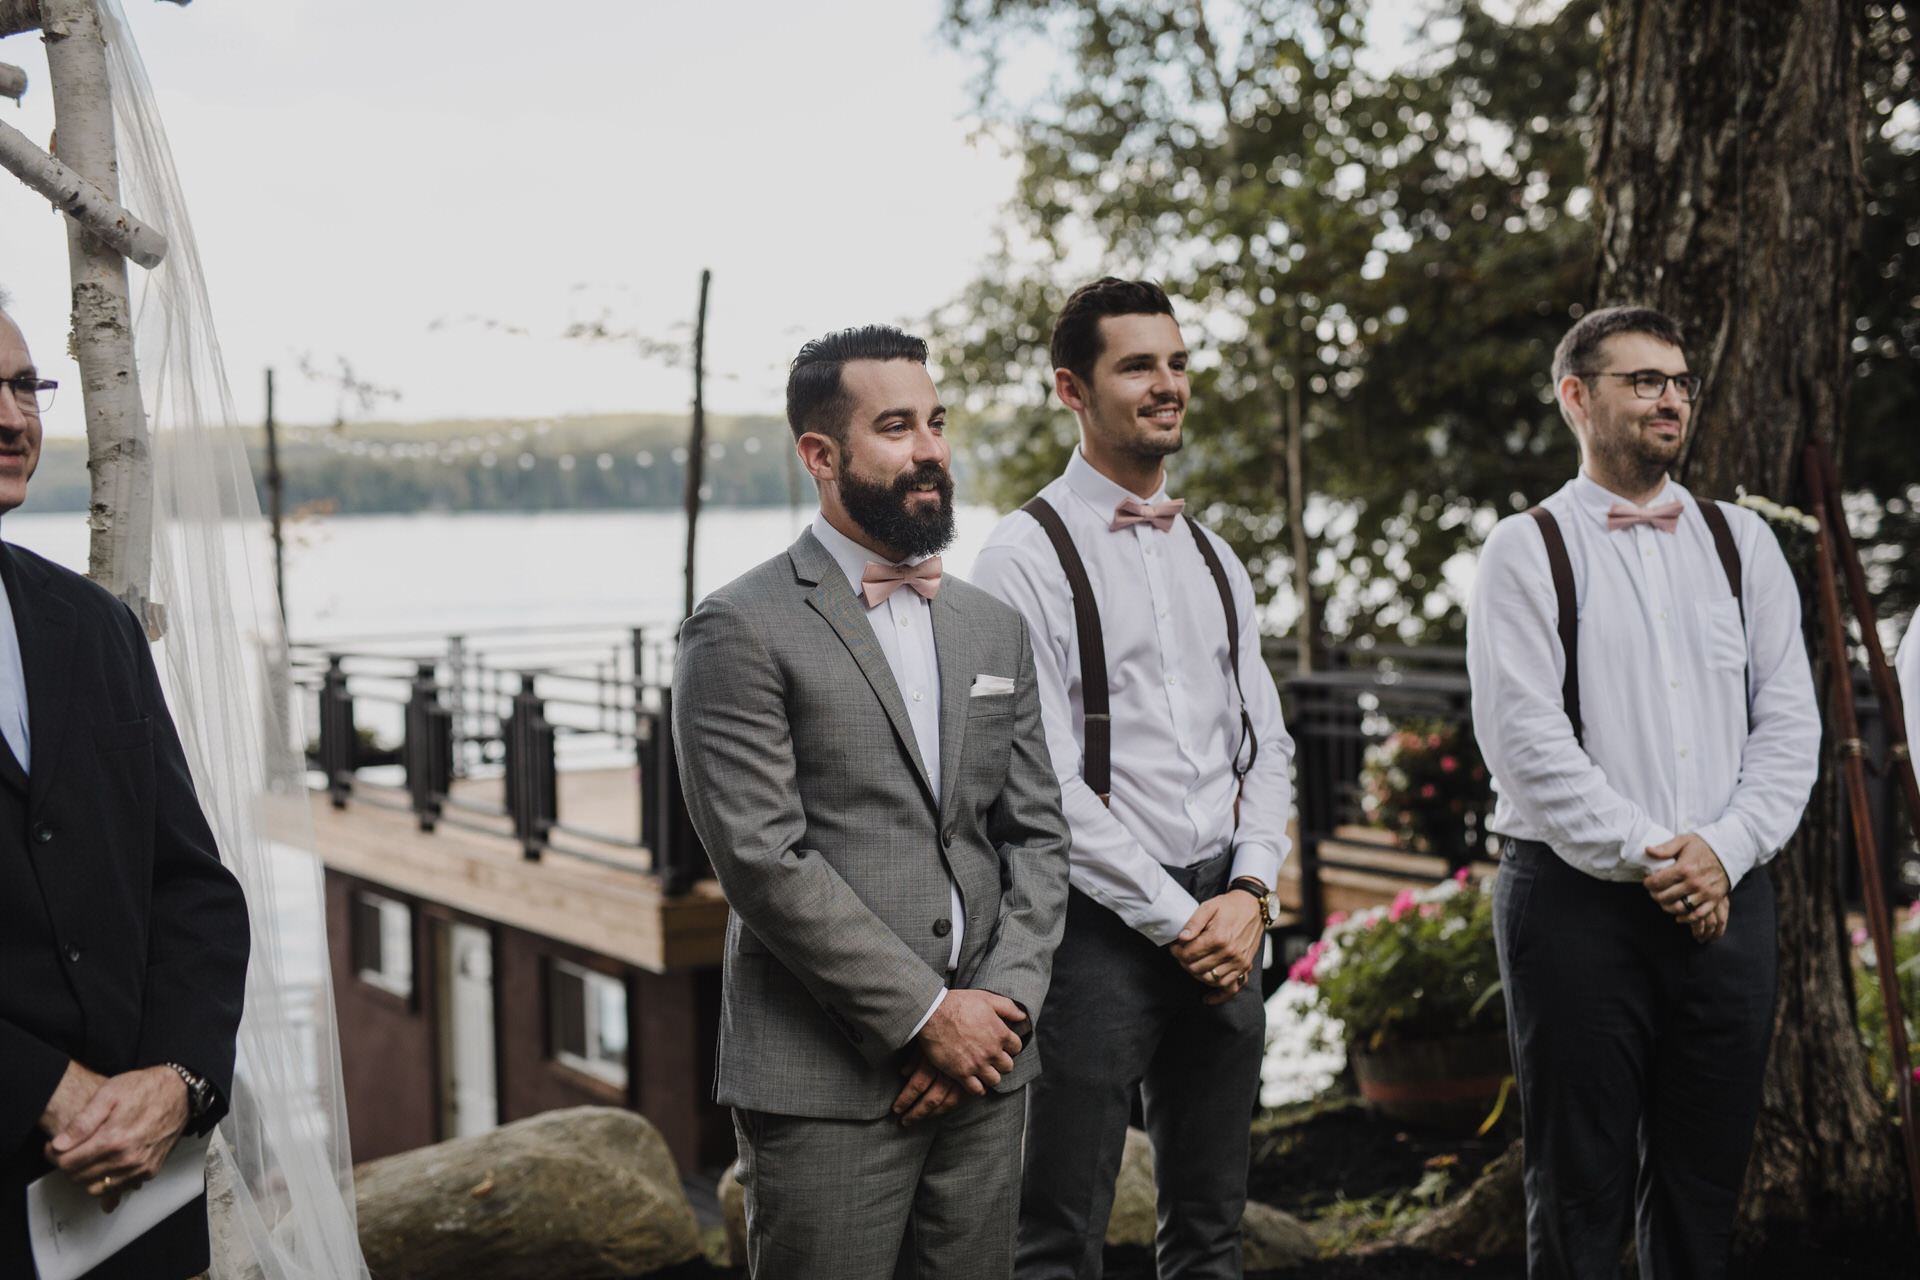 Muskoka Wedding - grooms first look